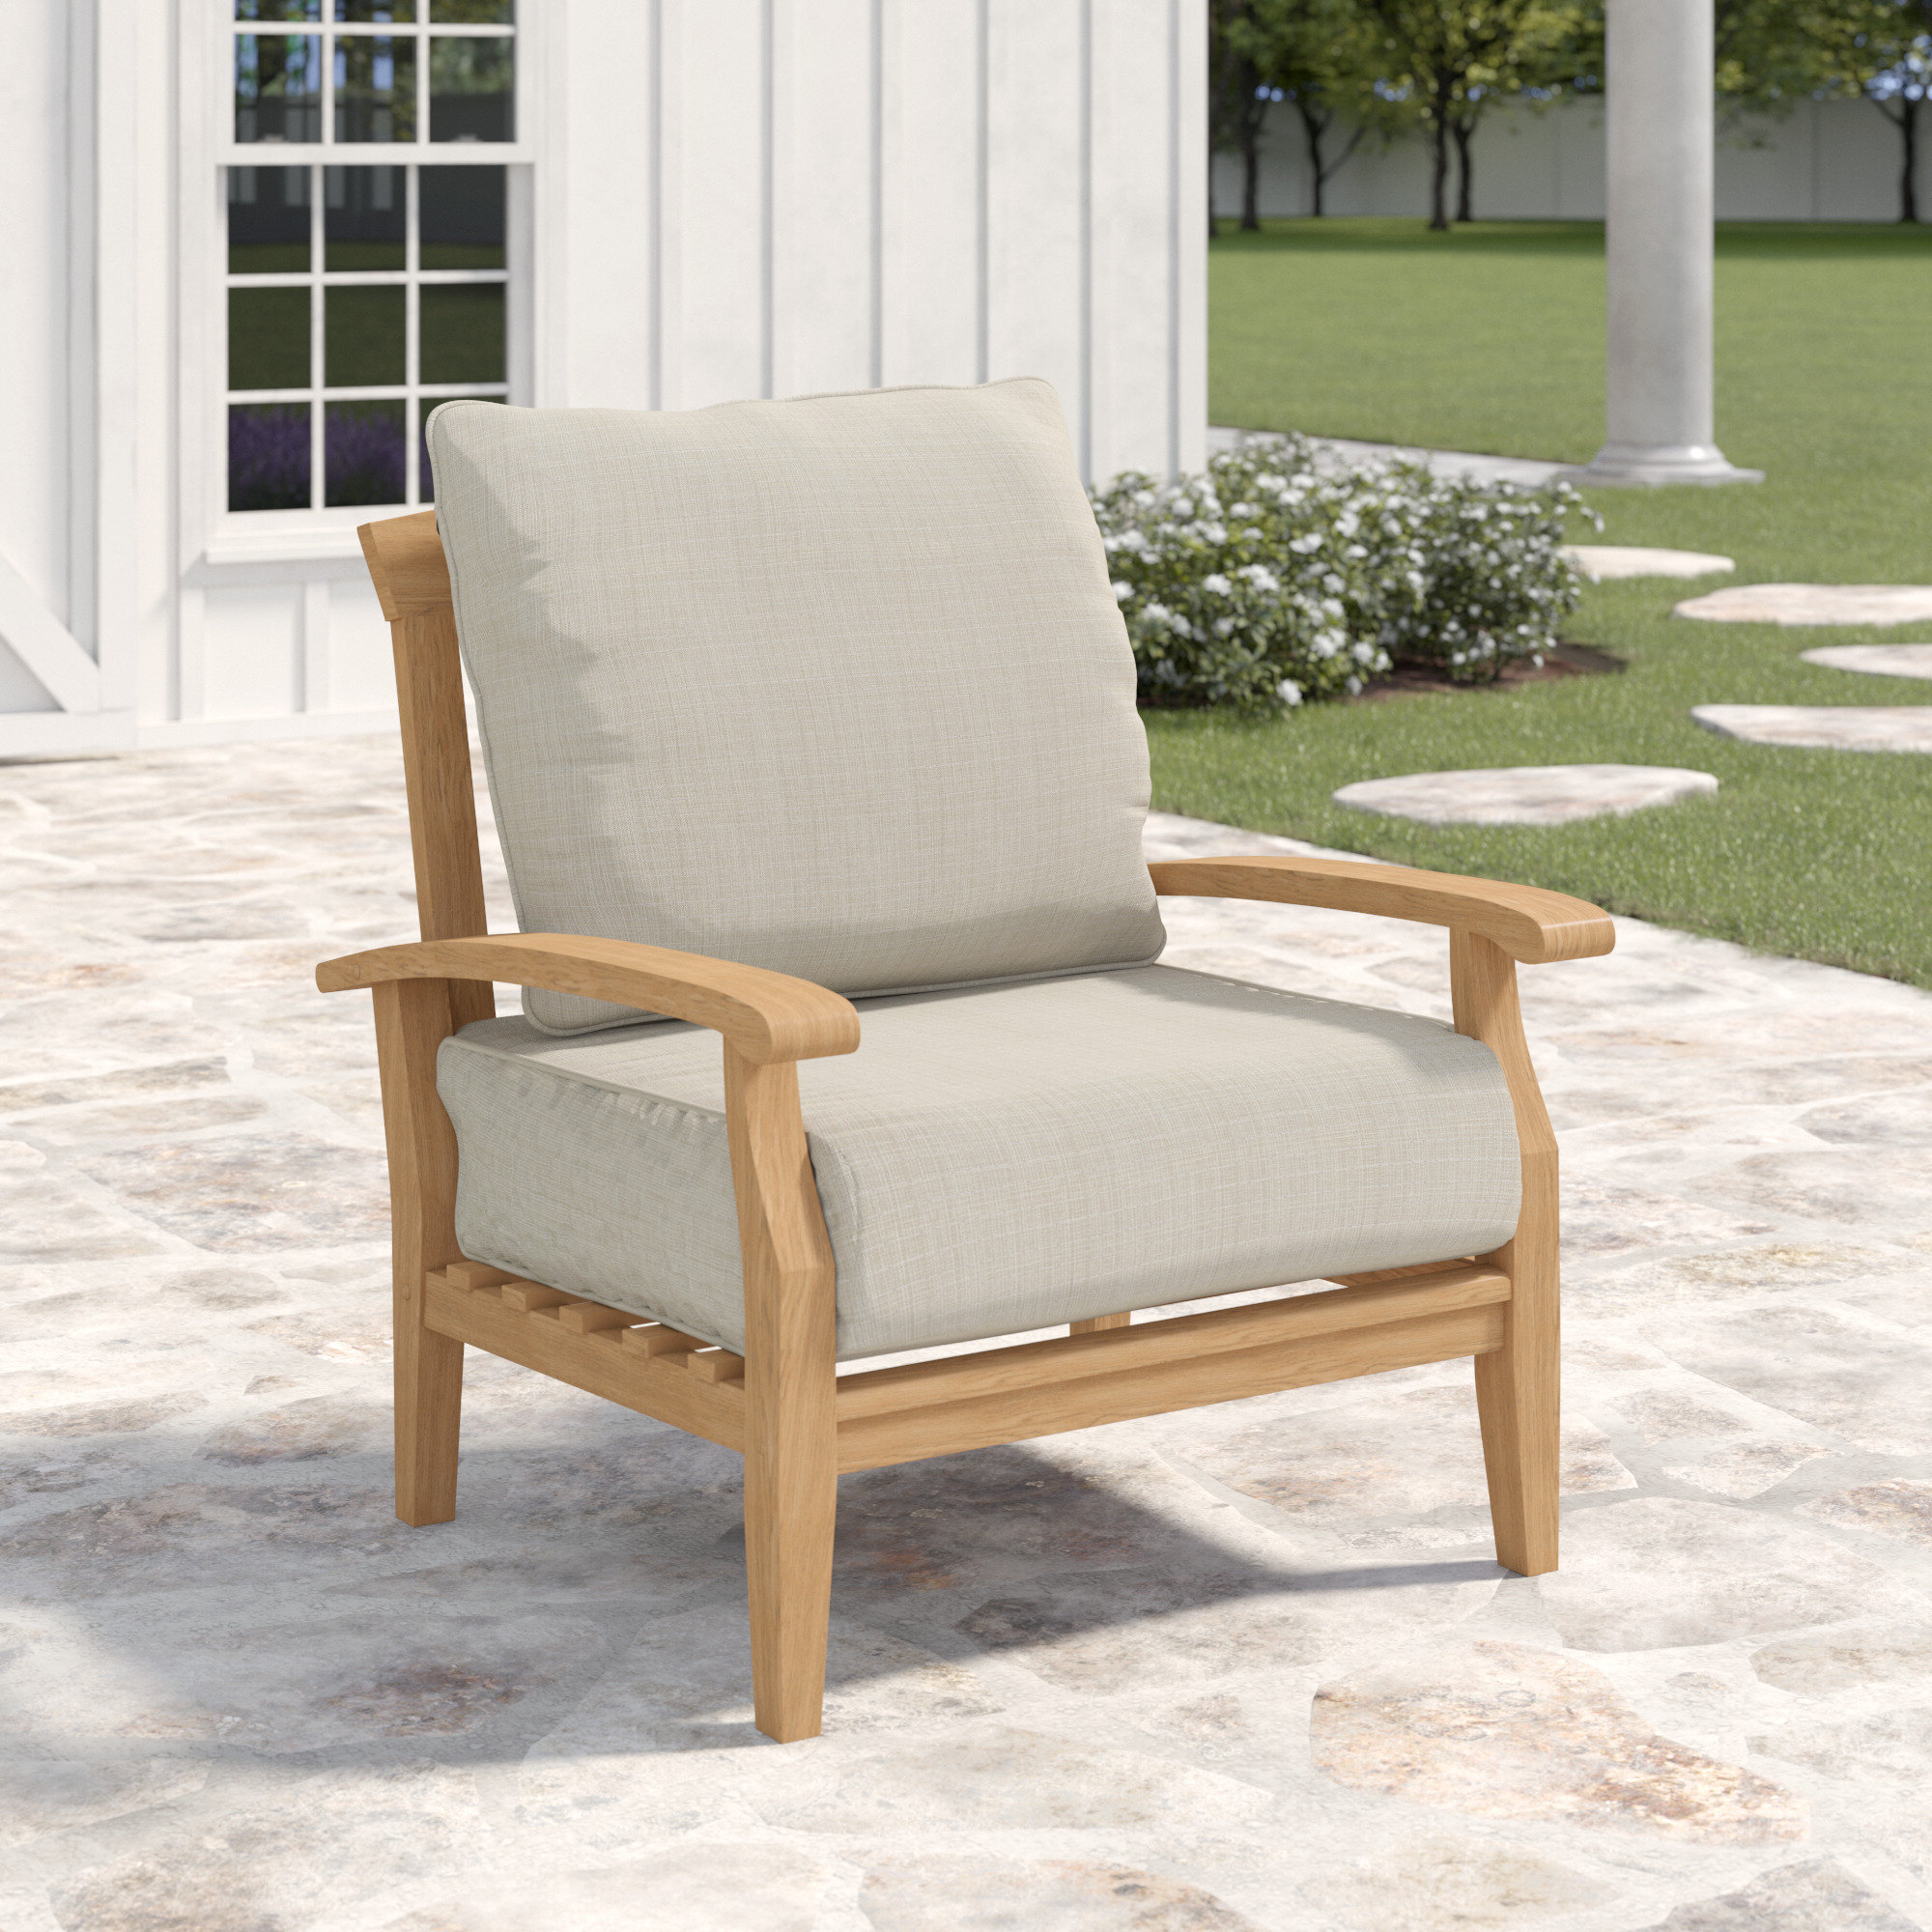 Latest Summerton Teak Patio Chair With Cushions With Regard To Summerton Teak Loveseats With Cushions (View 6 of 20)